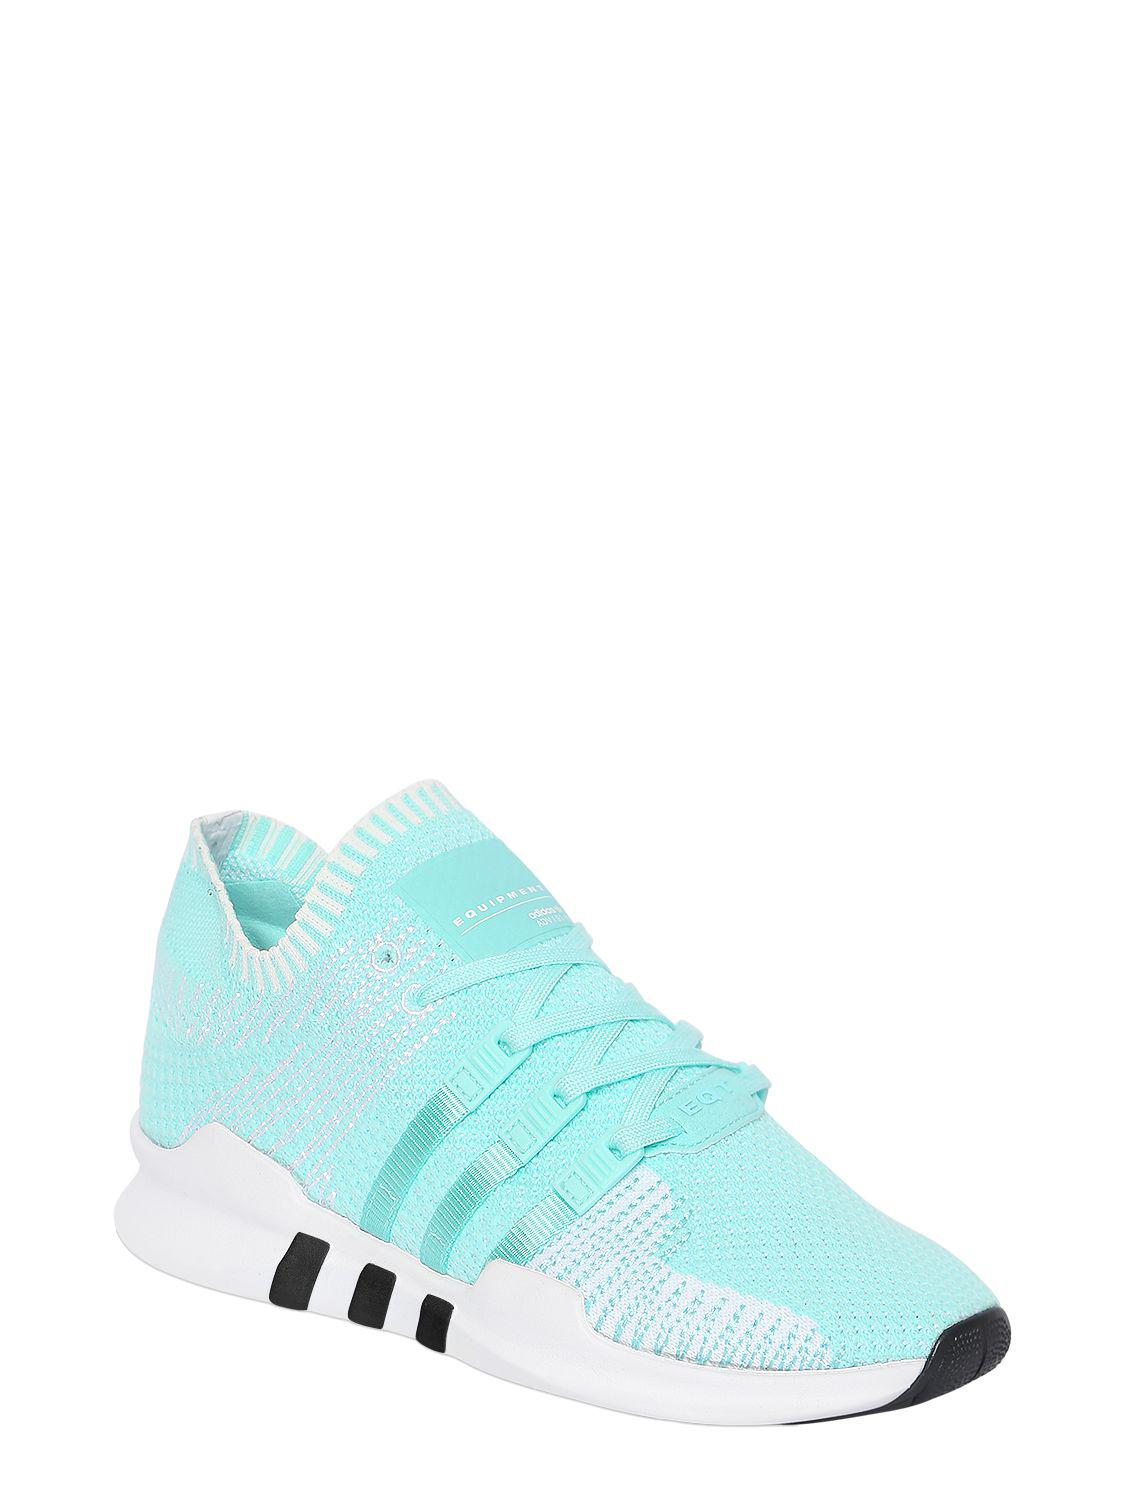 check out 7a625 db11d Adidas Originals - Blue Eqt Support Knit Sneakers - Lyst. View fullscreen